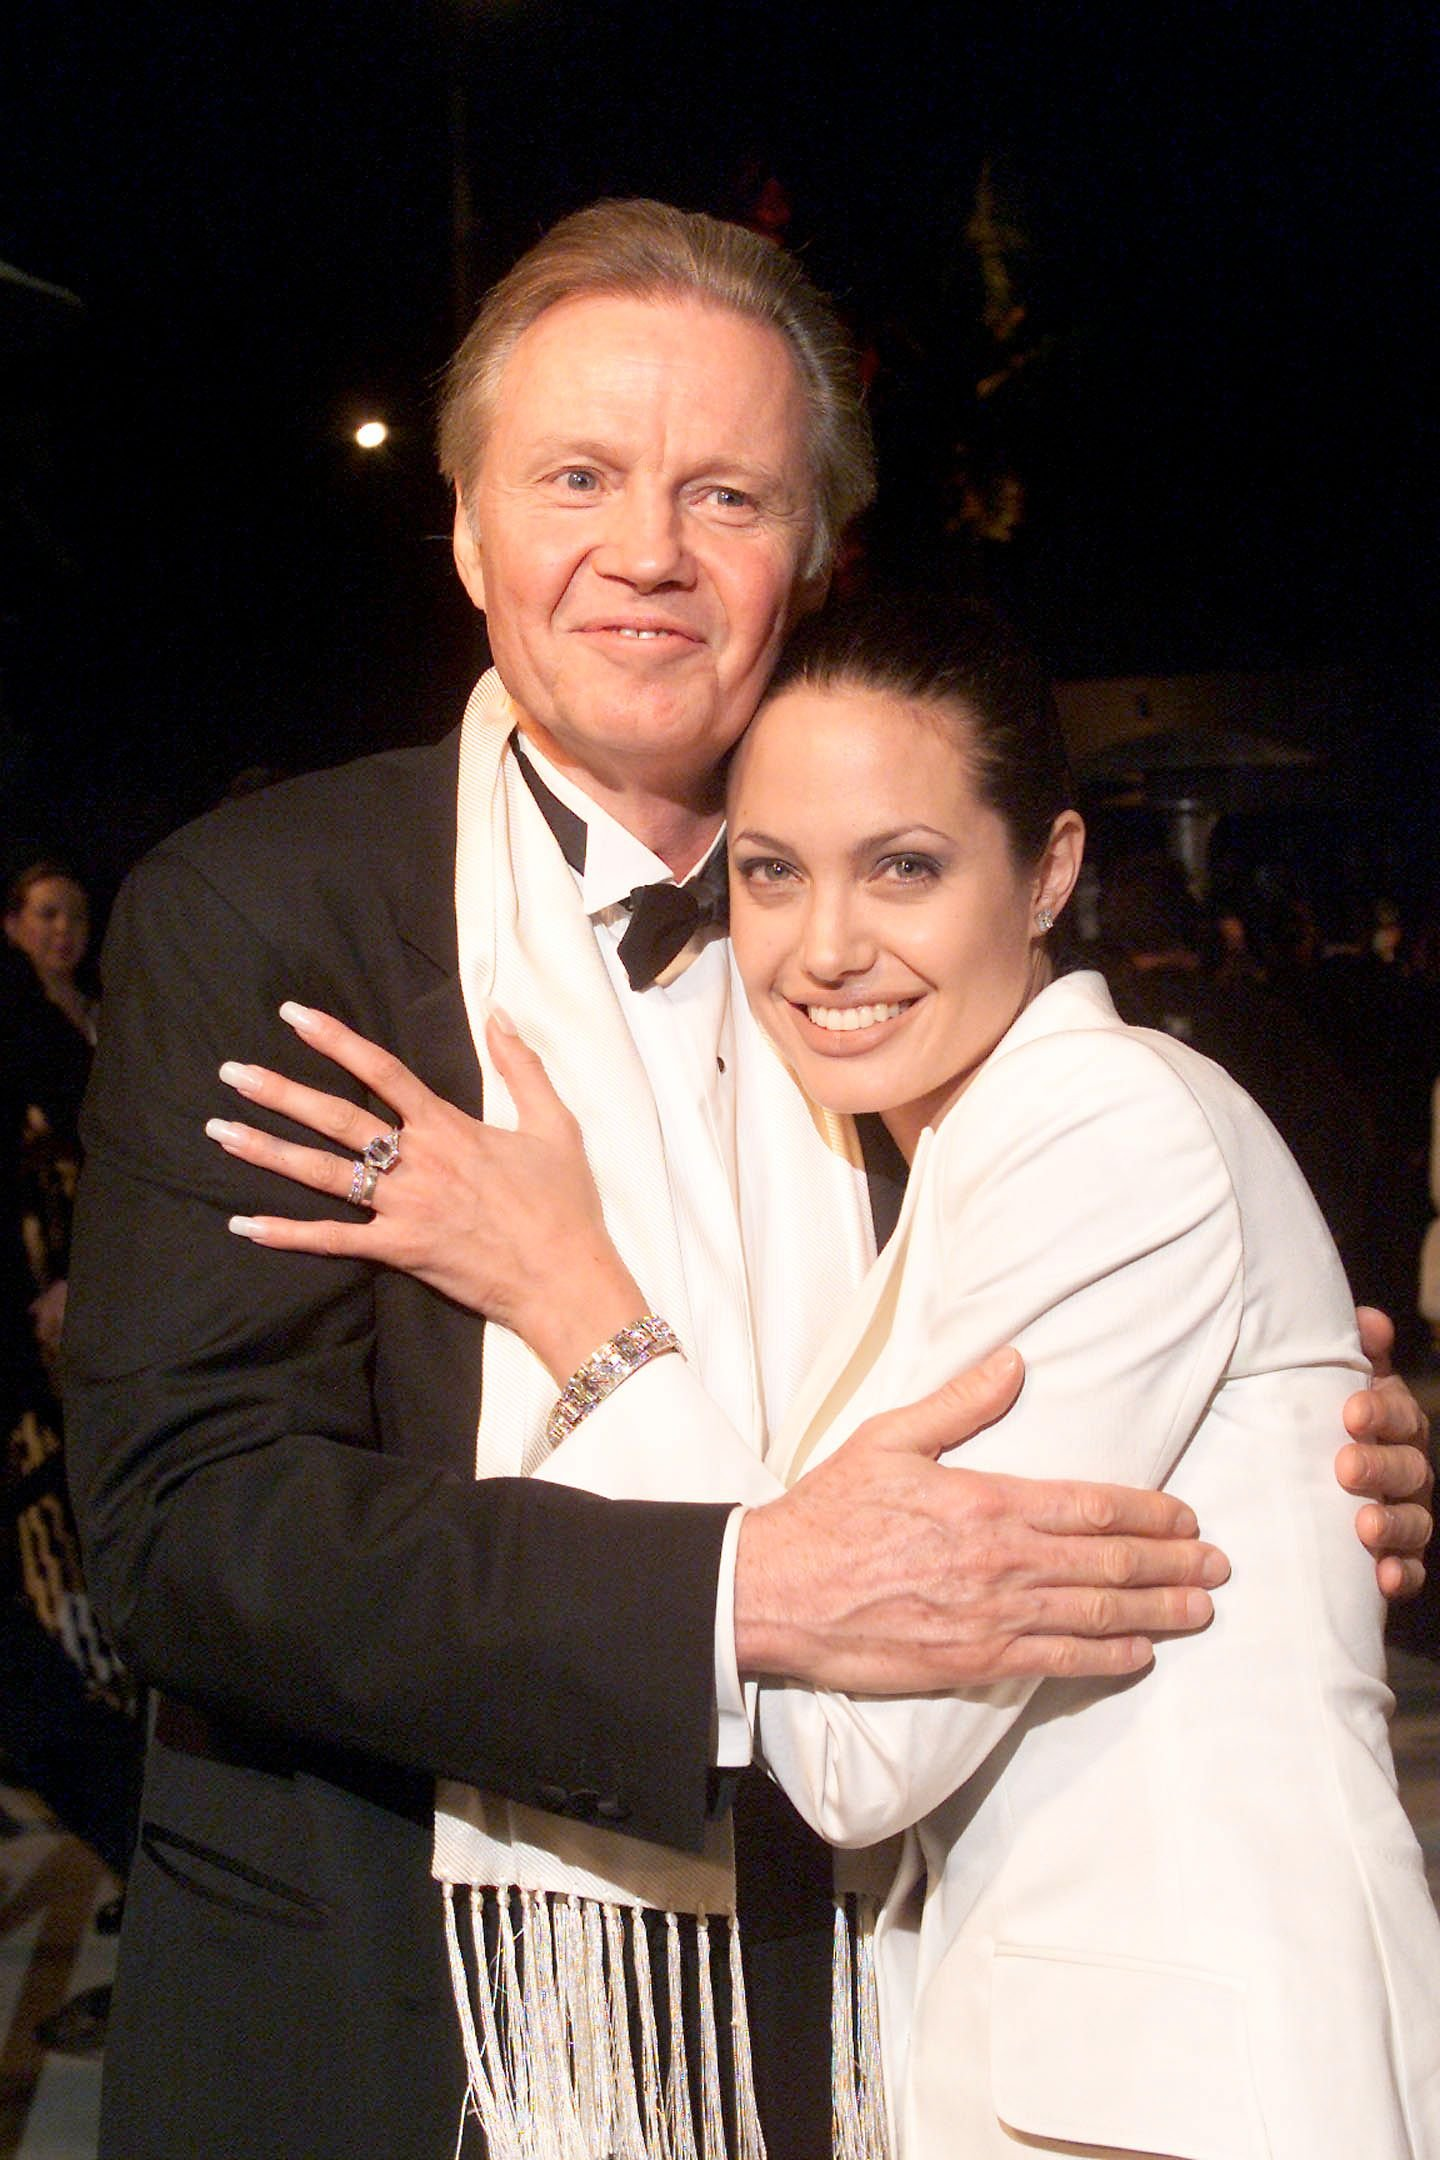 Angelina Jolie and Jon Voight at the Vanity Fair Oscar Party, LA, 2001 | Photo: Getty Images